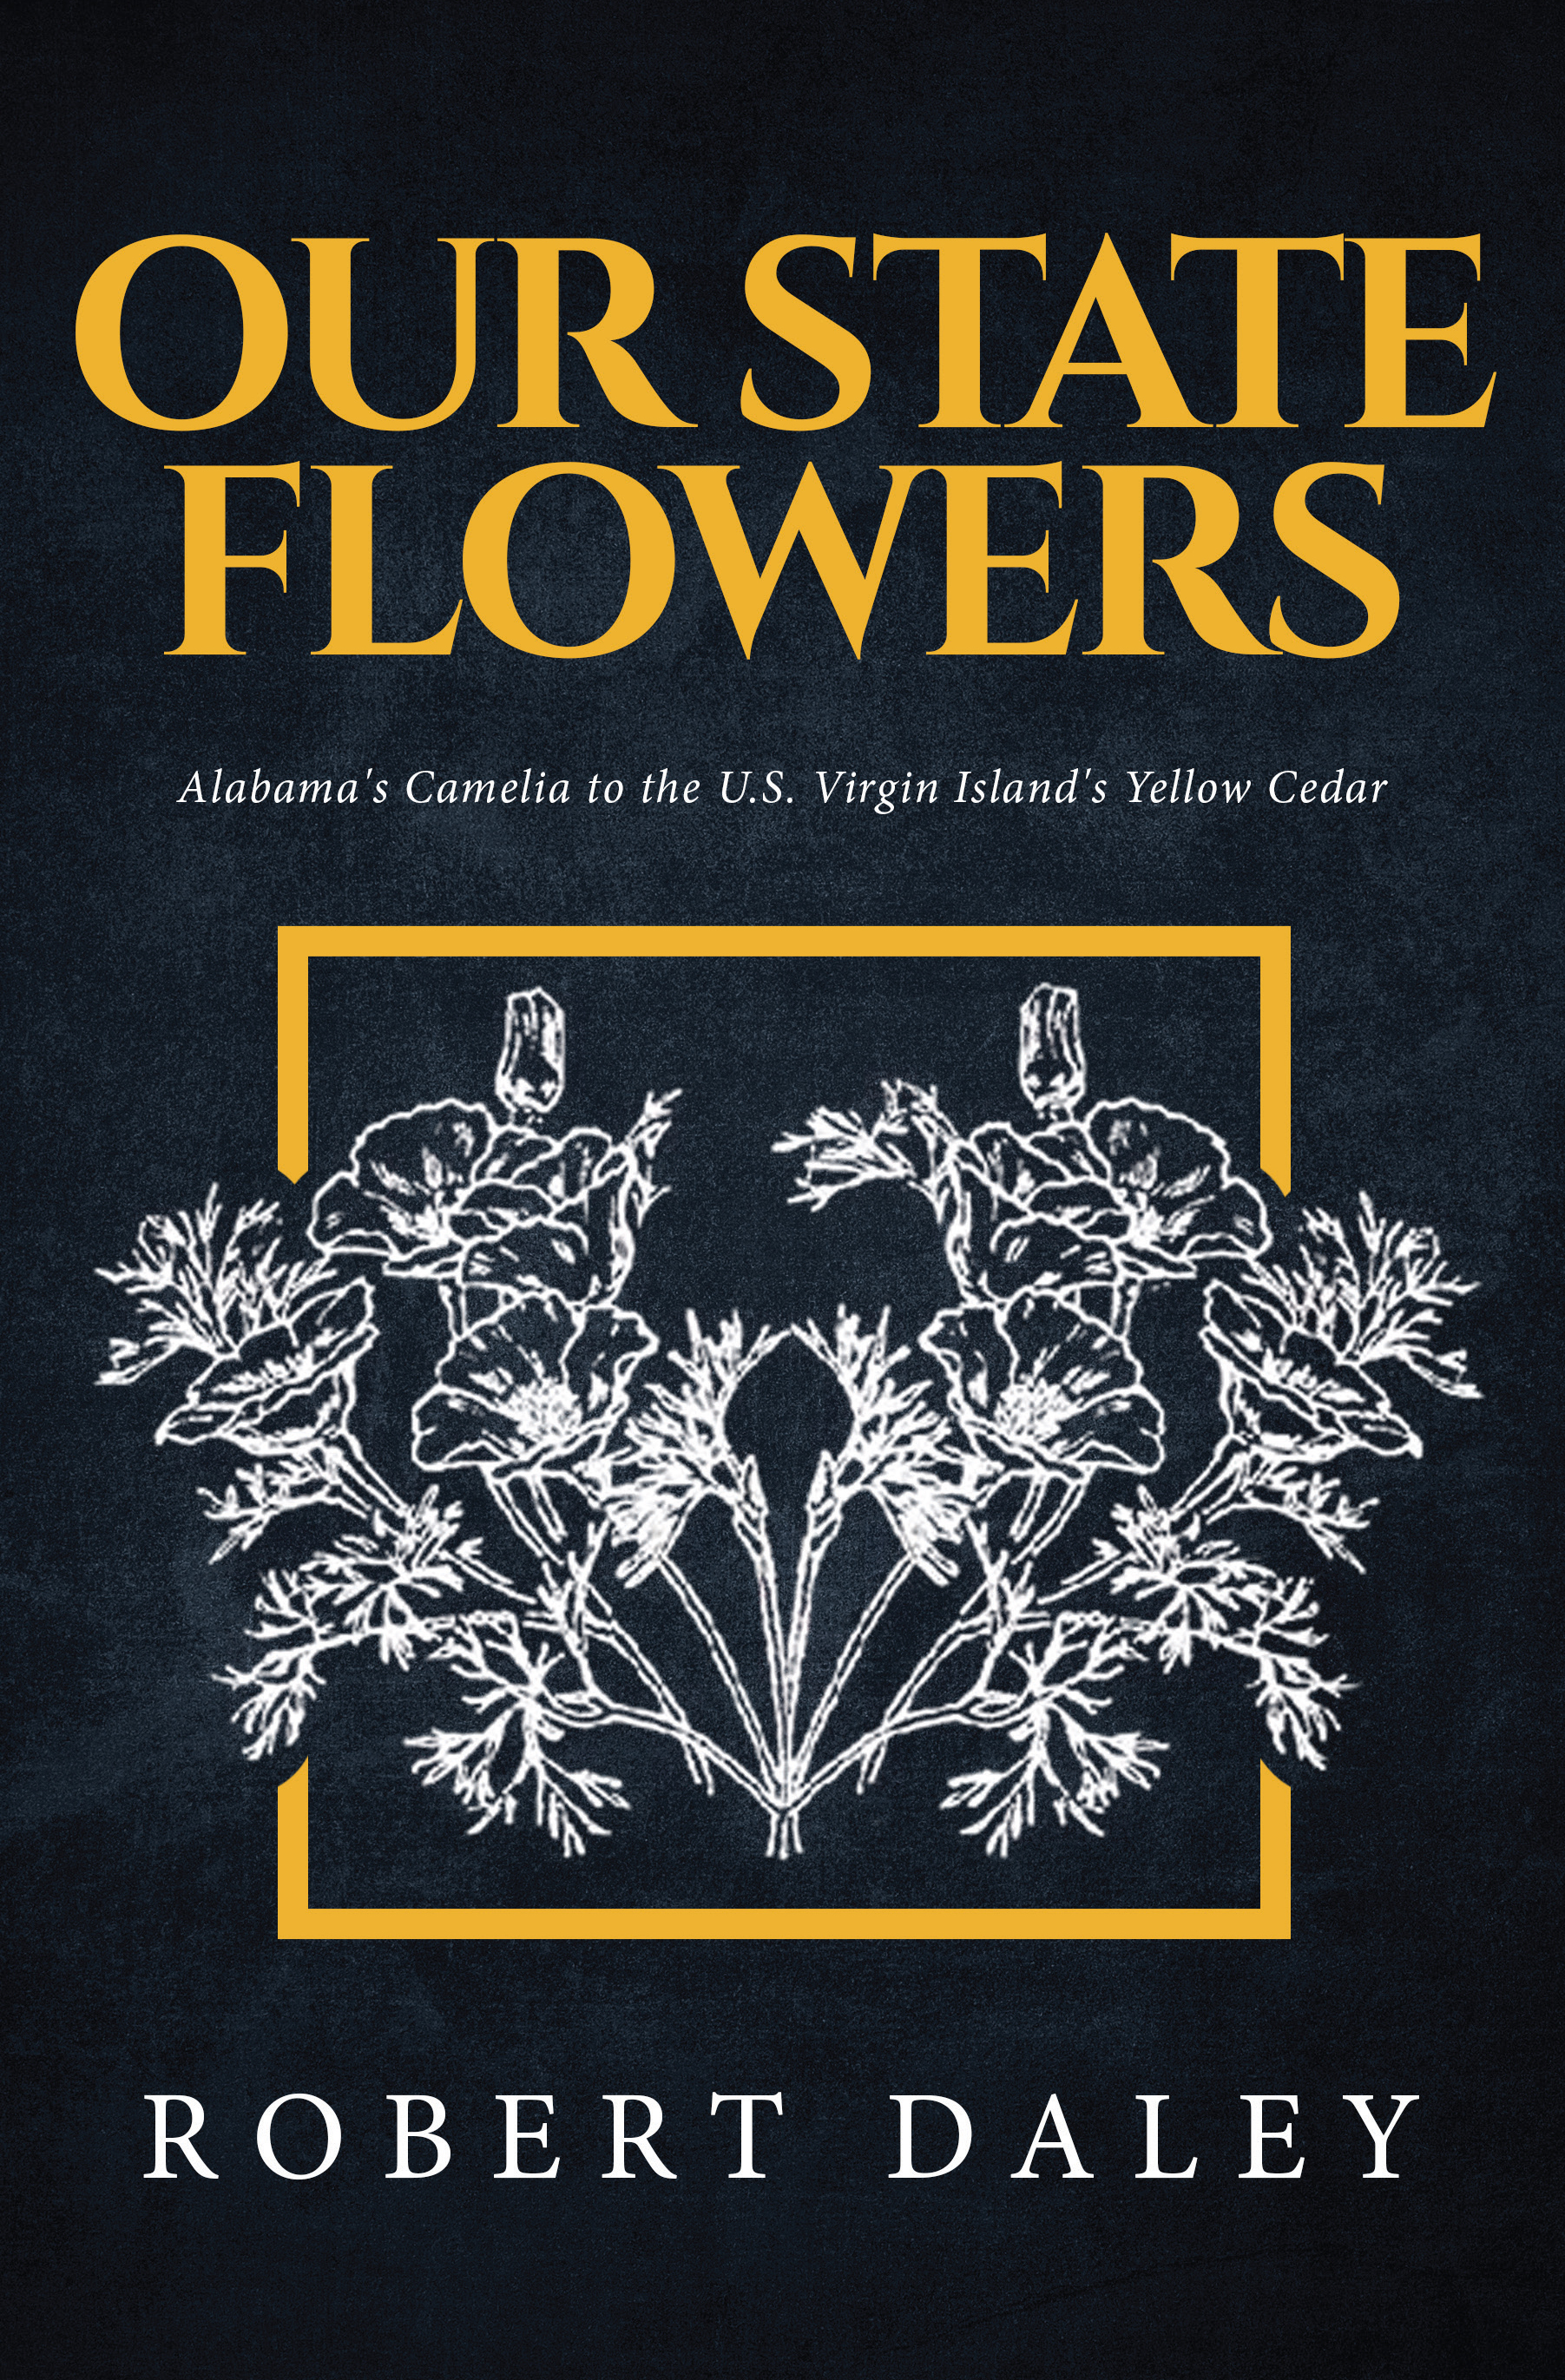 Robert Daley's Our State Flowers: A Coloring Book